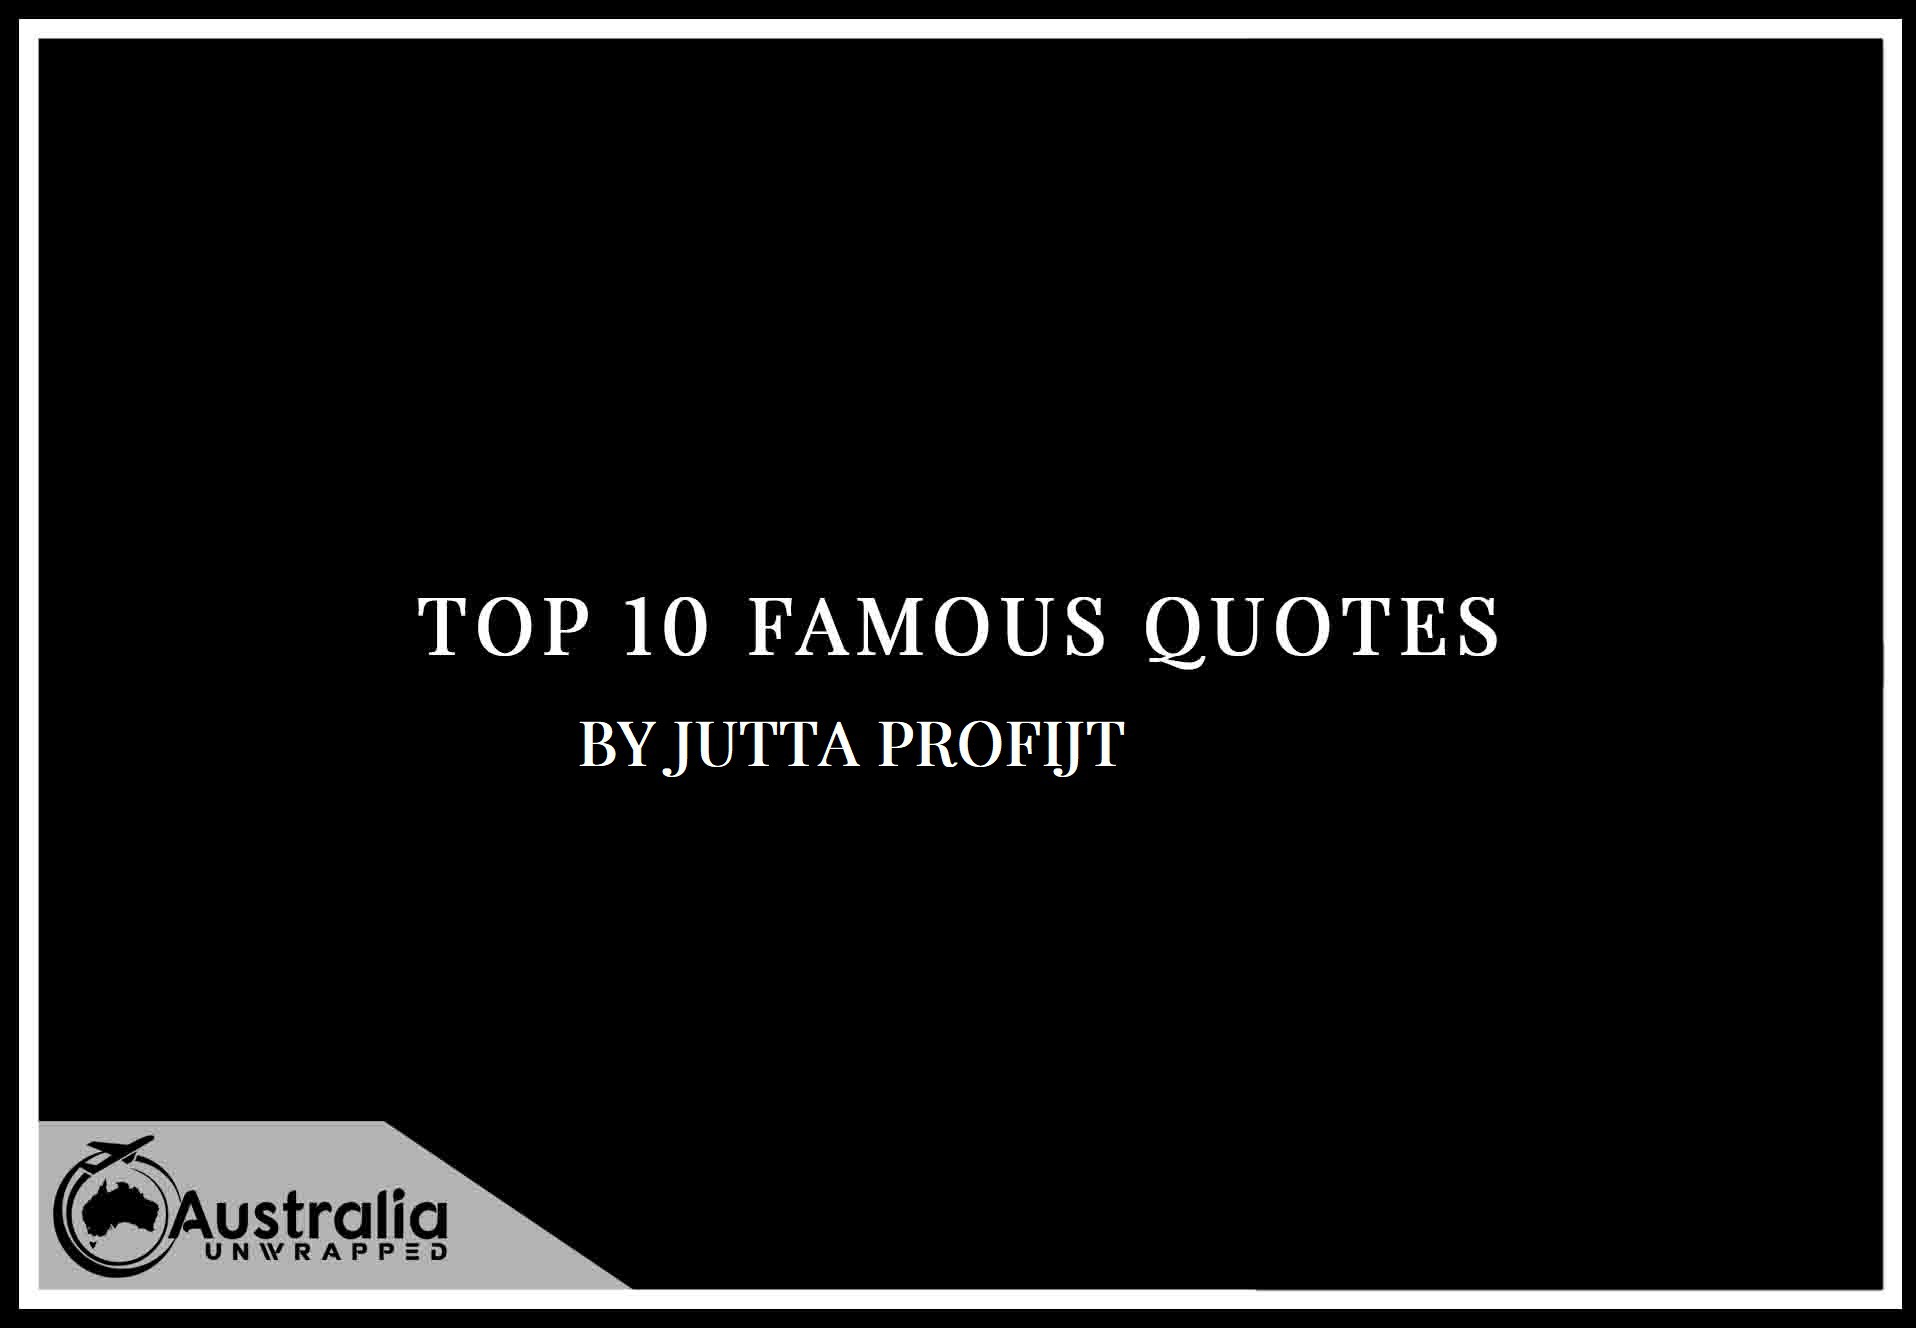 Top 10 Famous Quotes by Author Jutta Profijt